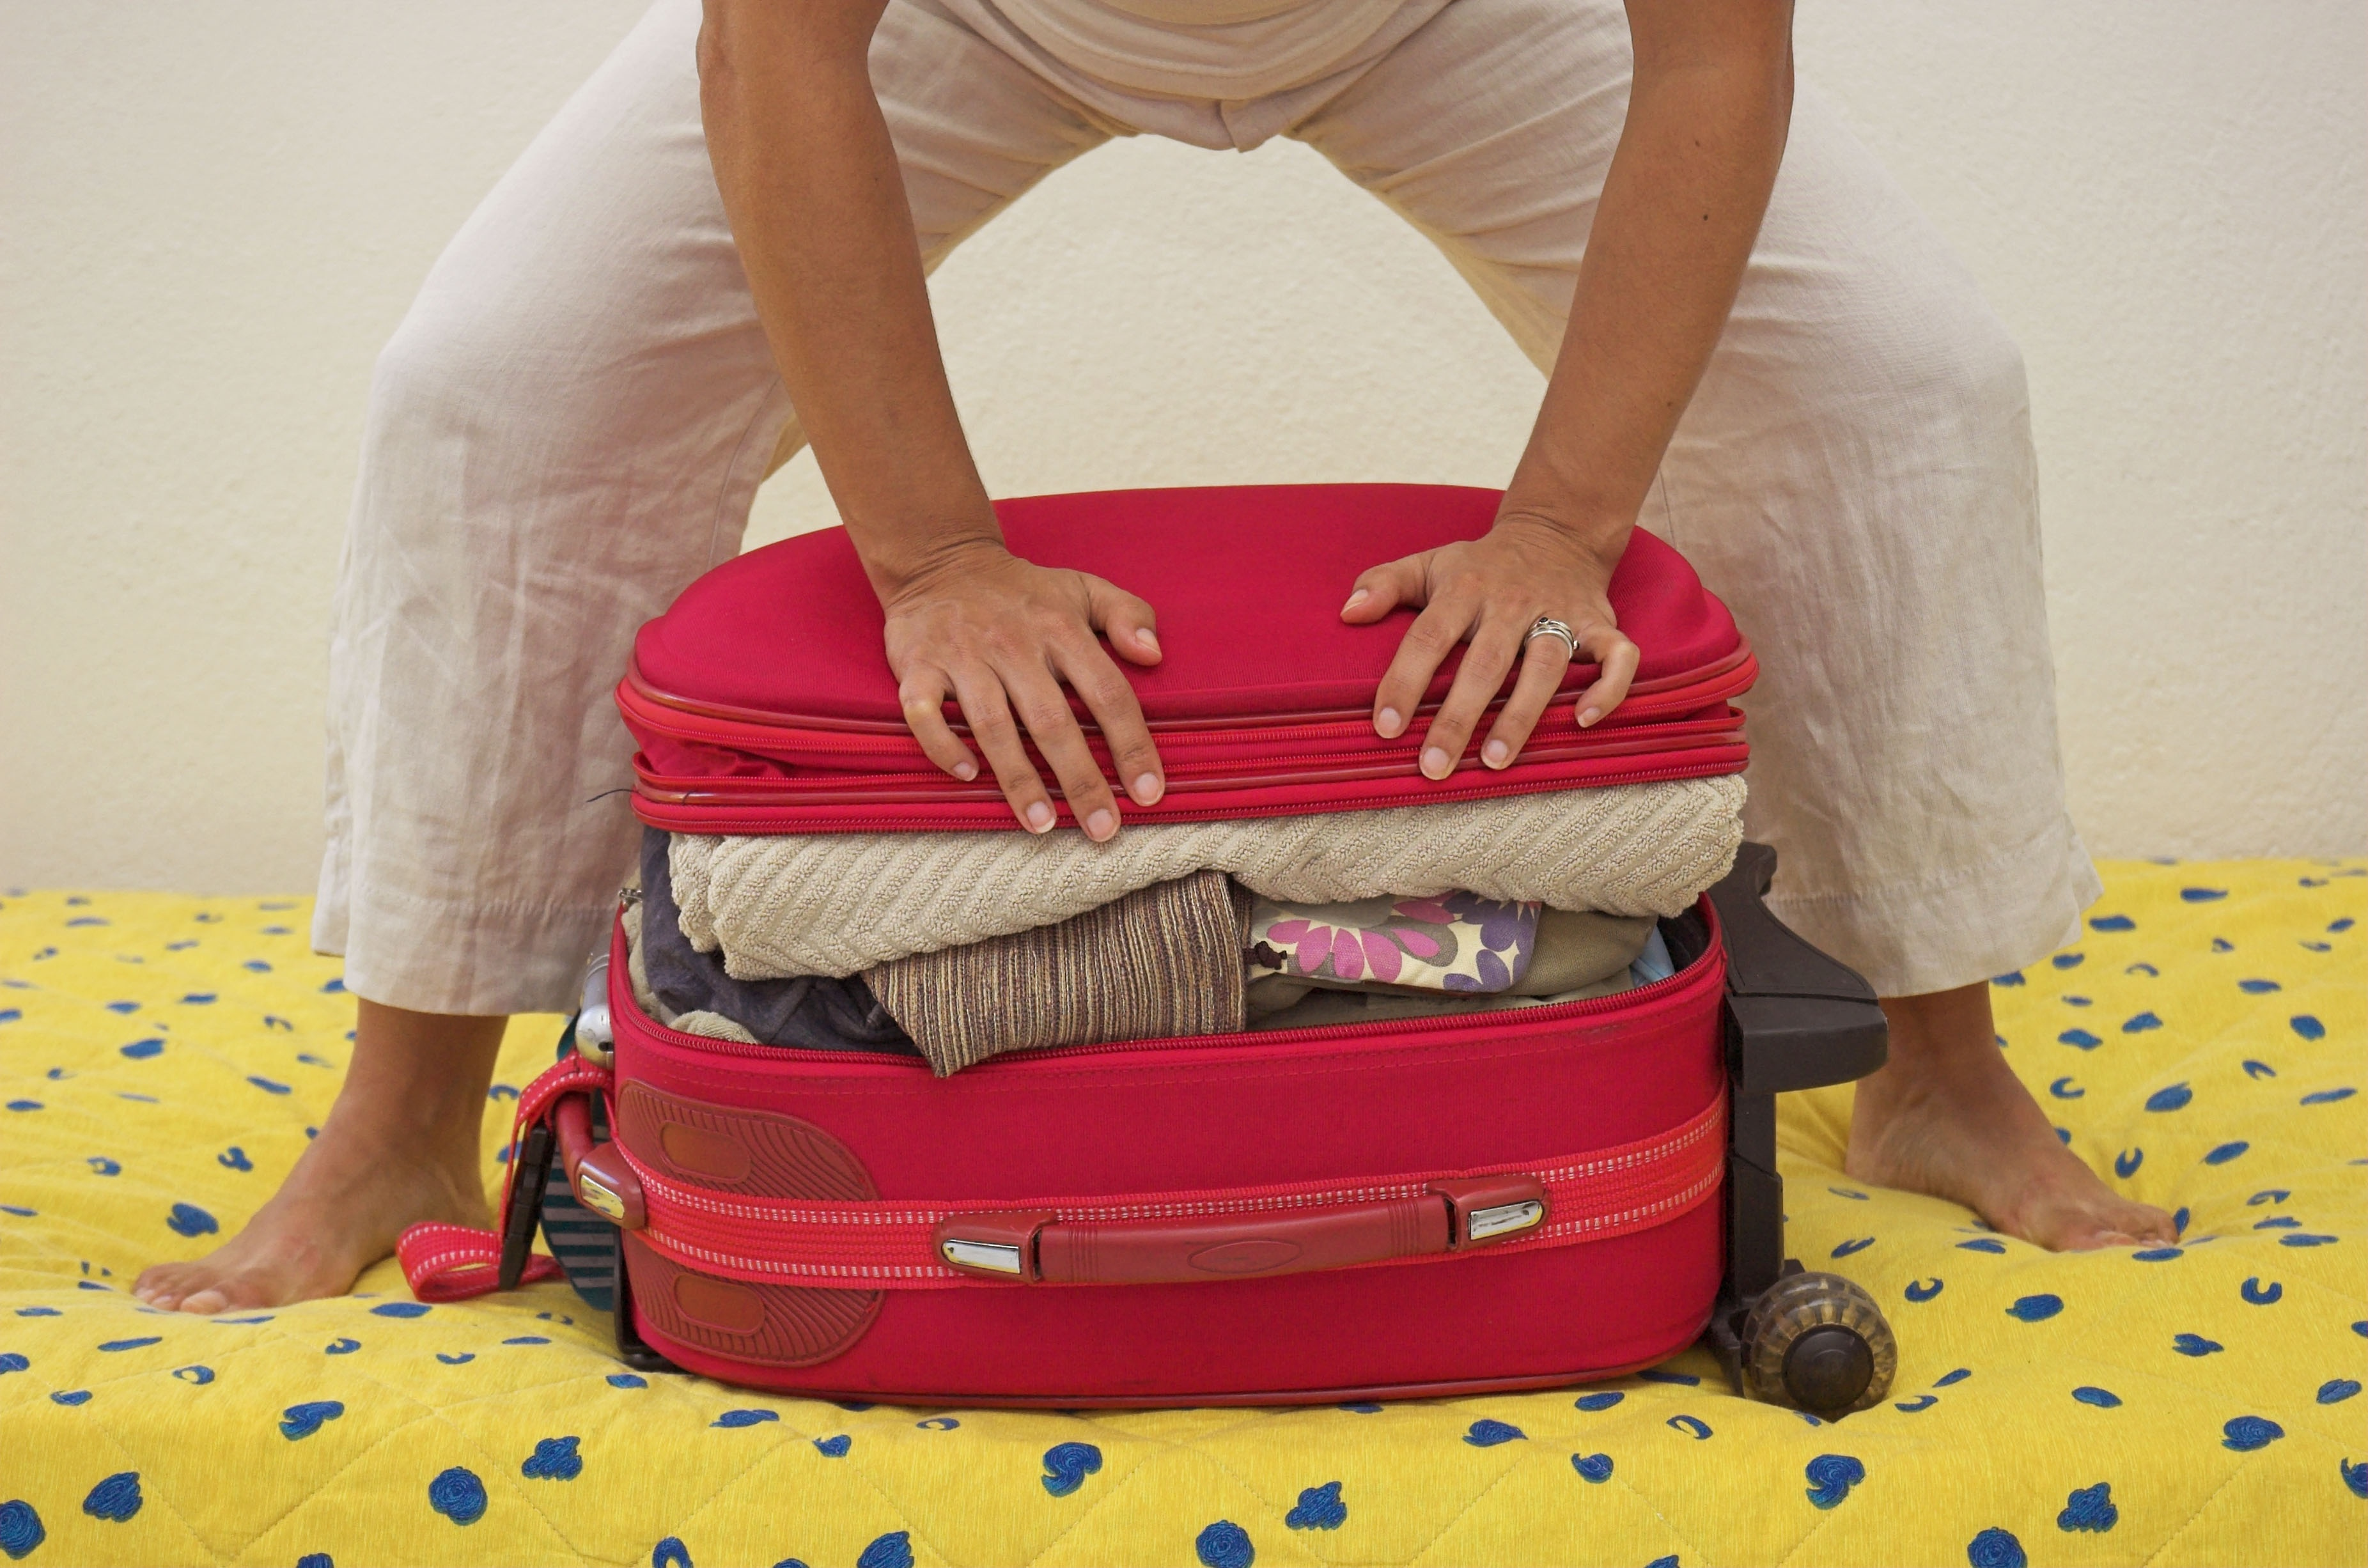 Woman trying to squeeze her packed travel case shut.